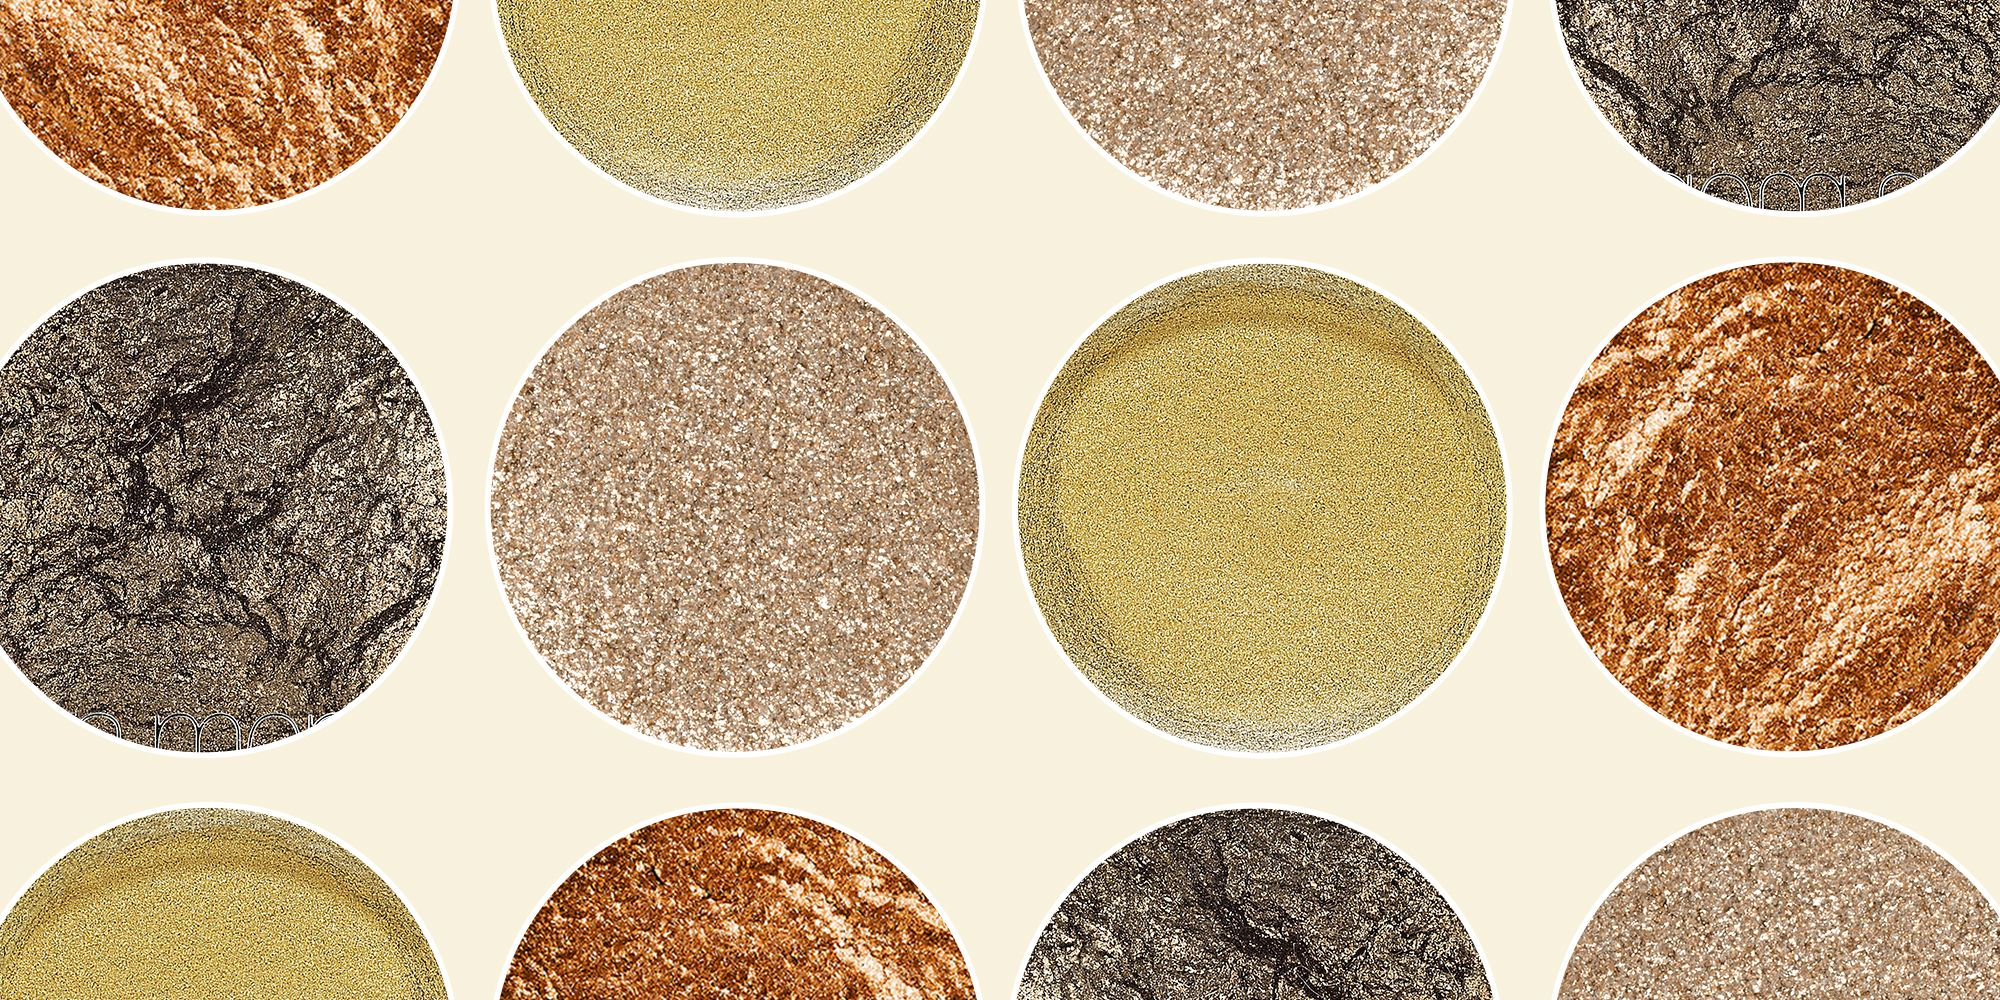 10 Best Gold Rose Gold Eyeshadows For 2018 Shimmer Powder And Cream Gold Eyeshadow